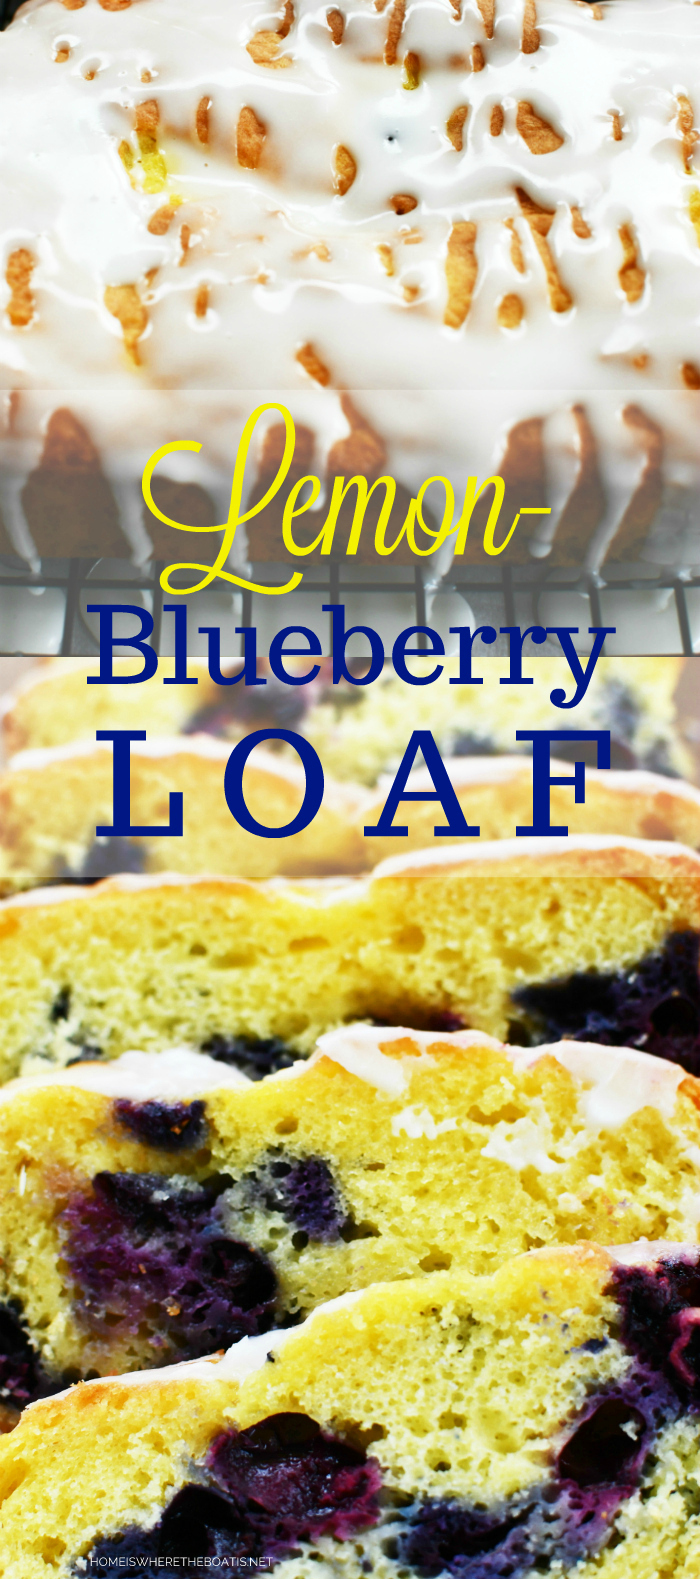 Lemon-Blueberry Loaf with Lemon Glaze | ©homeiswheretheboatis.net #cake #easy #recipes #lemon #blueberry